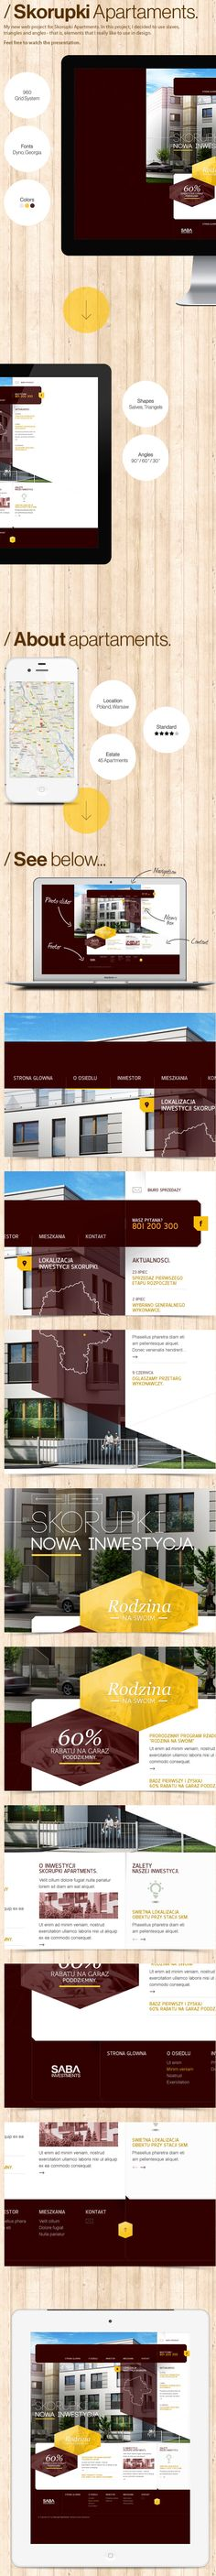 Exclusive Apartments by Adam Rudzki, via Behance